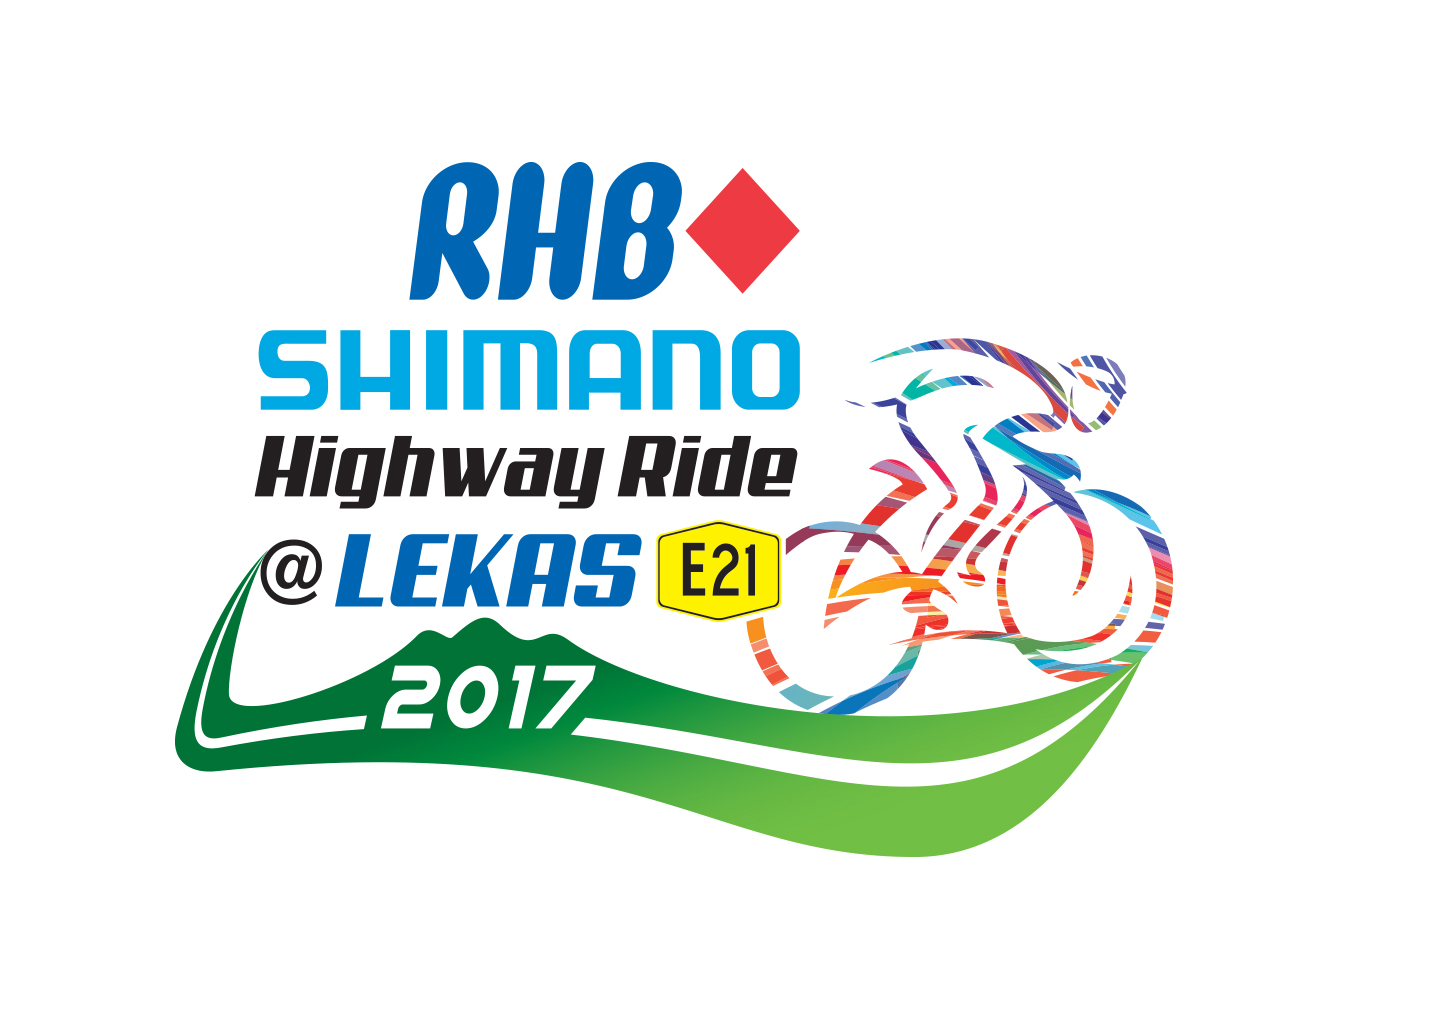 RHB Shimano Highway Ride @ LEKAS 2017